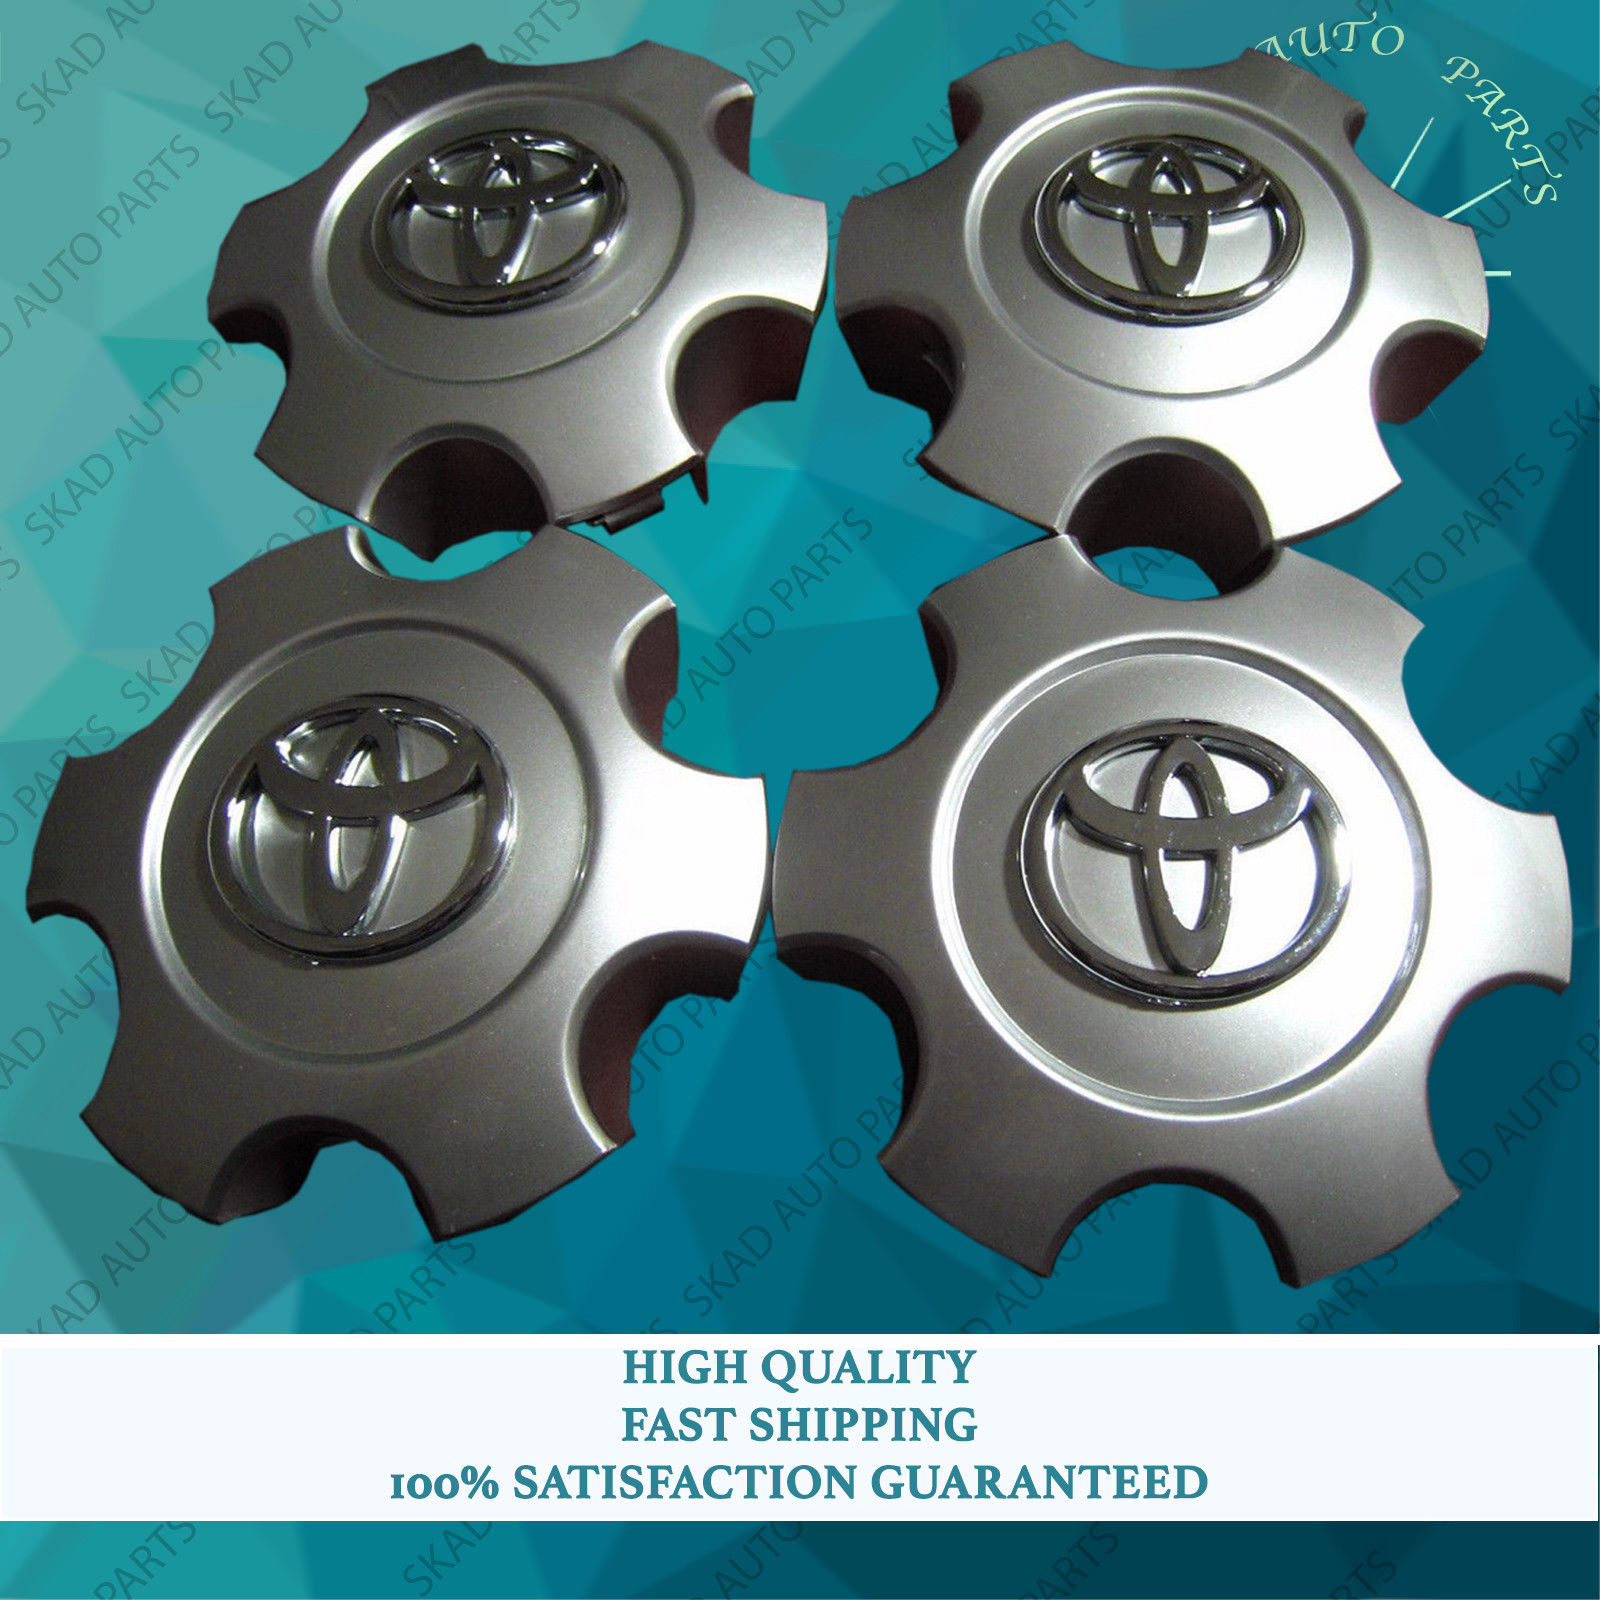 Toyota Tundra Center Caps >> Awesome 4 Wheel Center Caps Toyota Tundra Sequoia 2003 2007 17 Hubcap 42603420nm Silver 2018